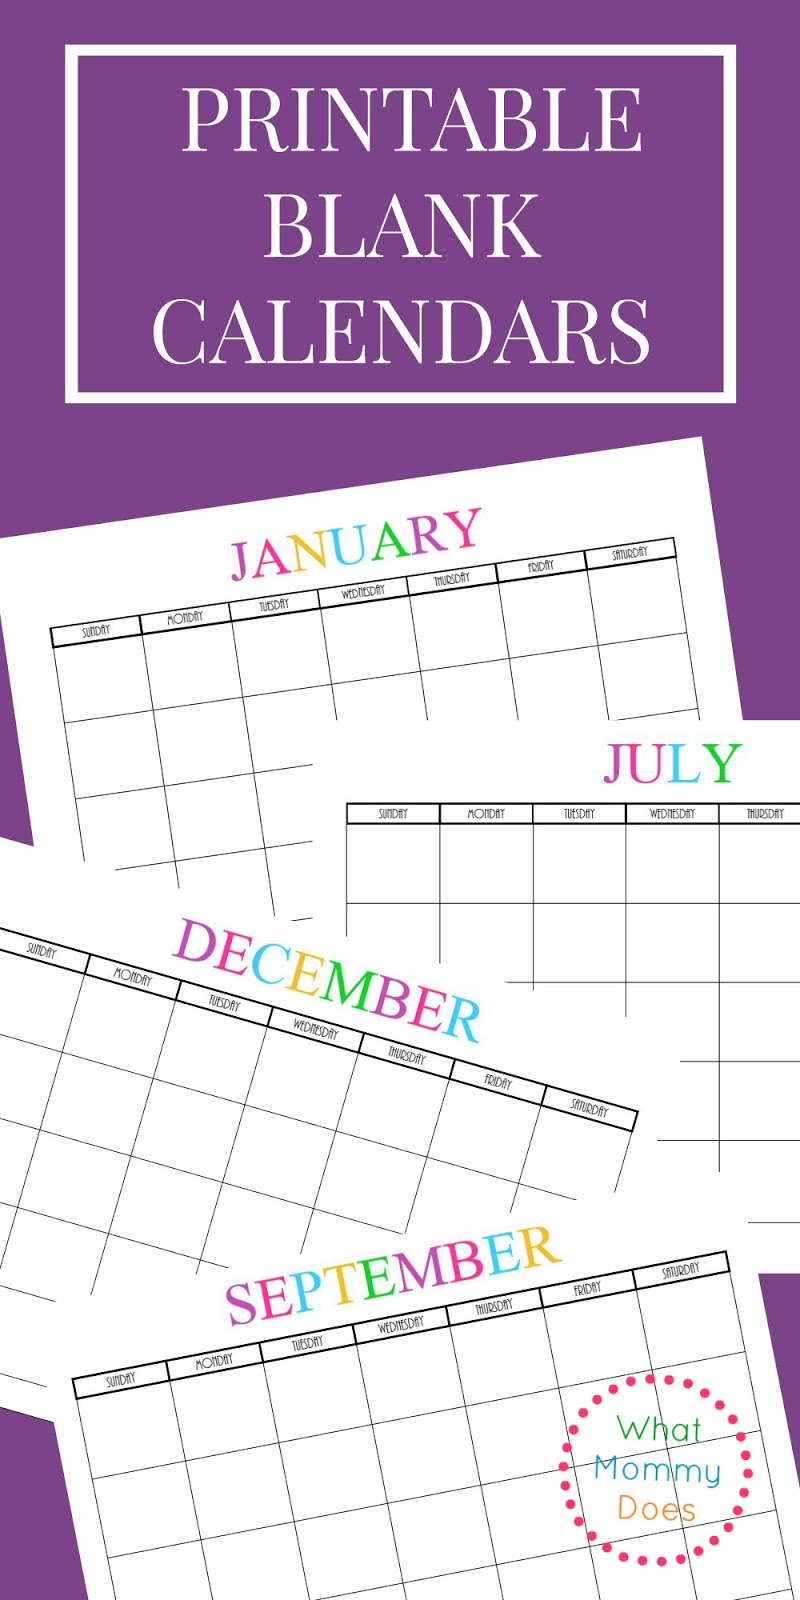 Musings of an Average Mom: Free Printable Blank Calendars